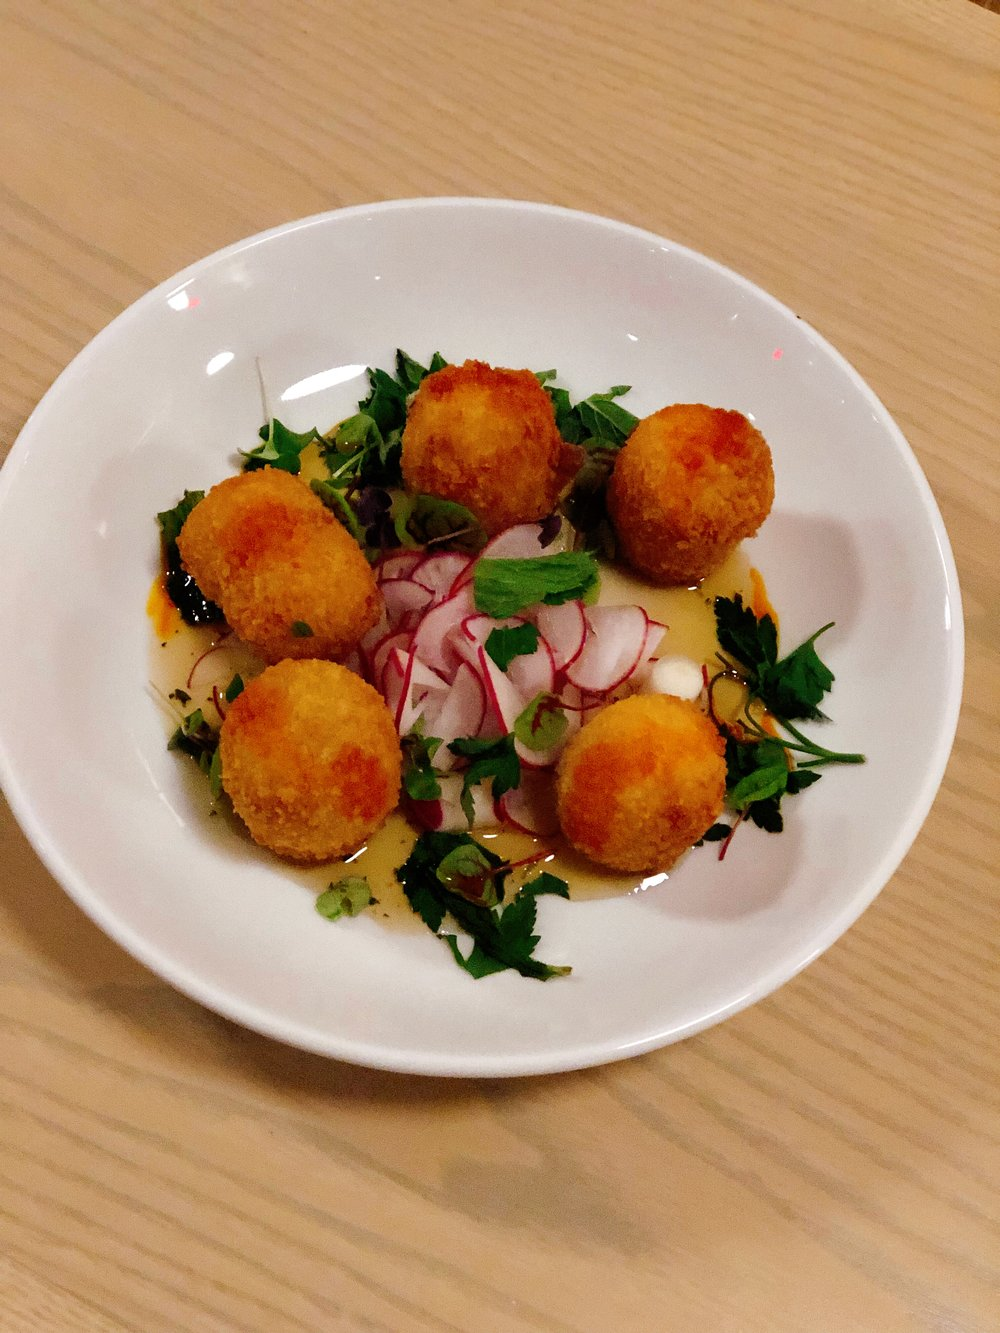 Crispy Goat Cheese | Radish + Herbs + Honey Ferment